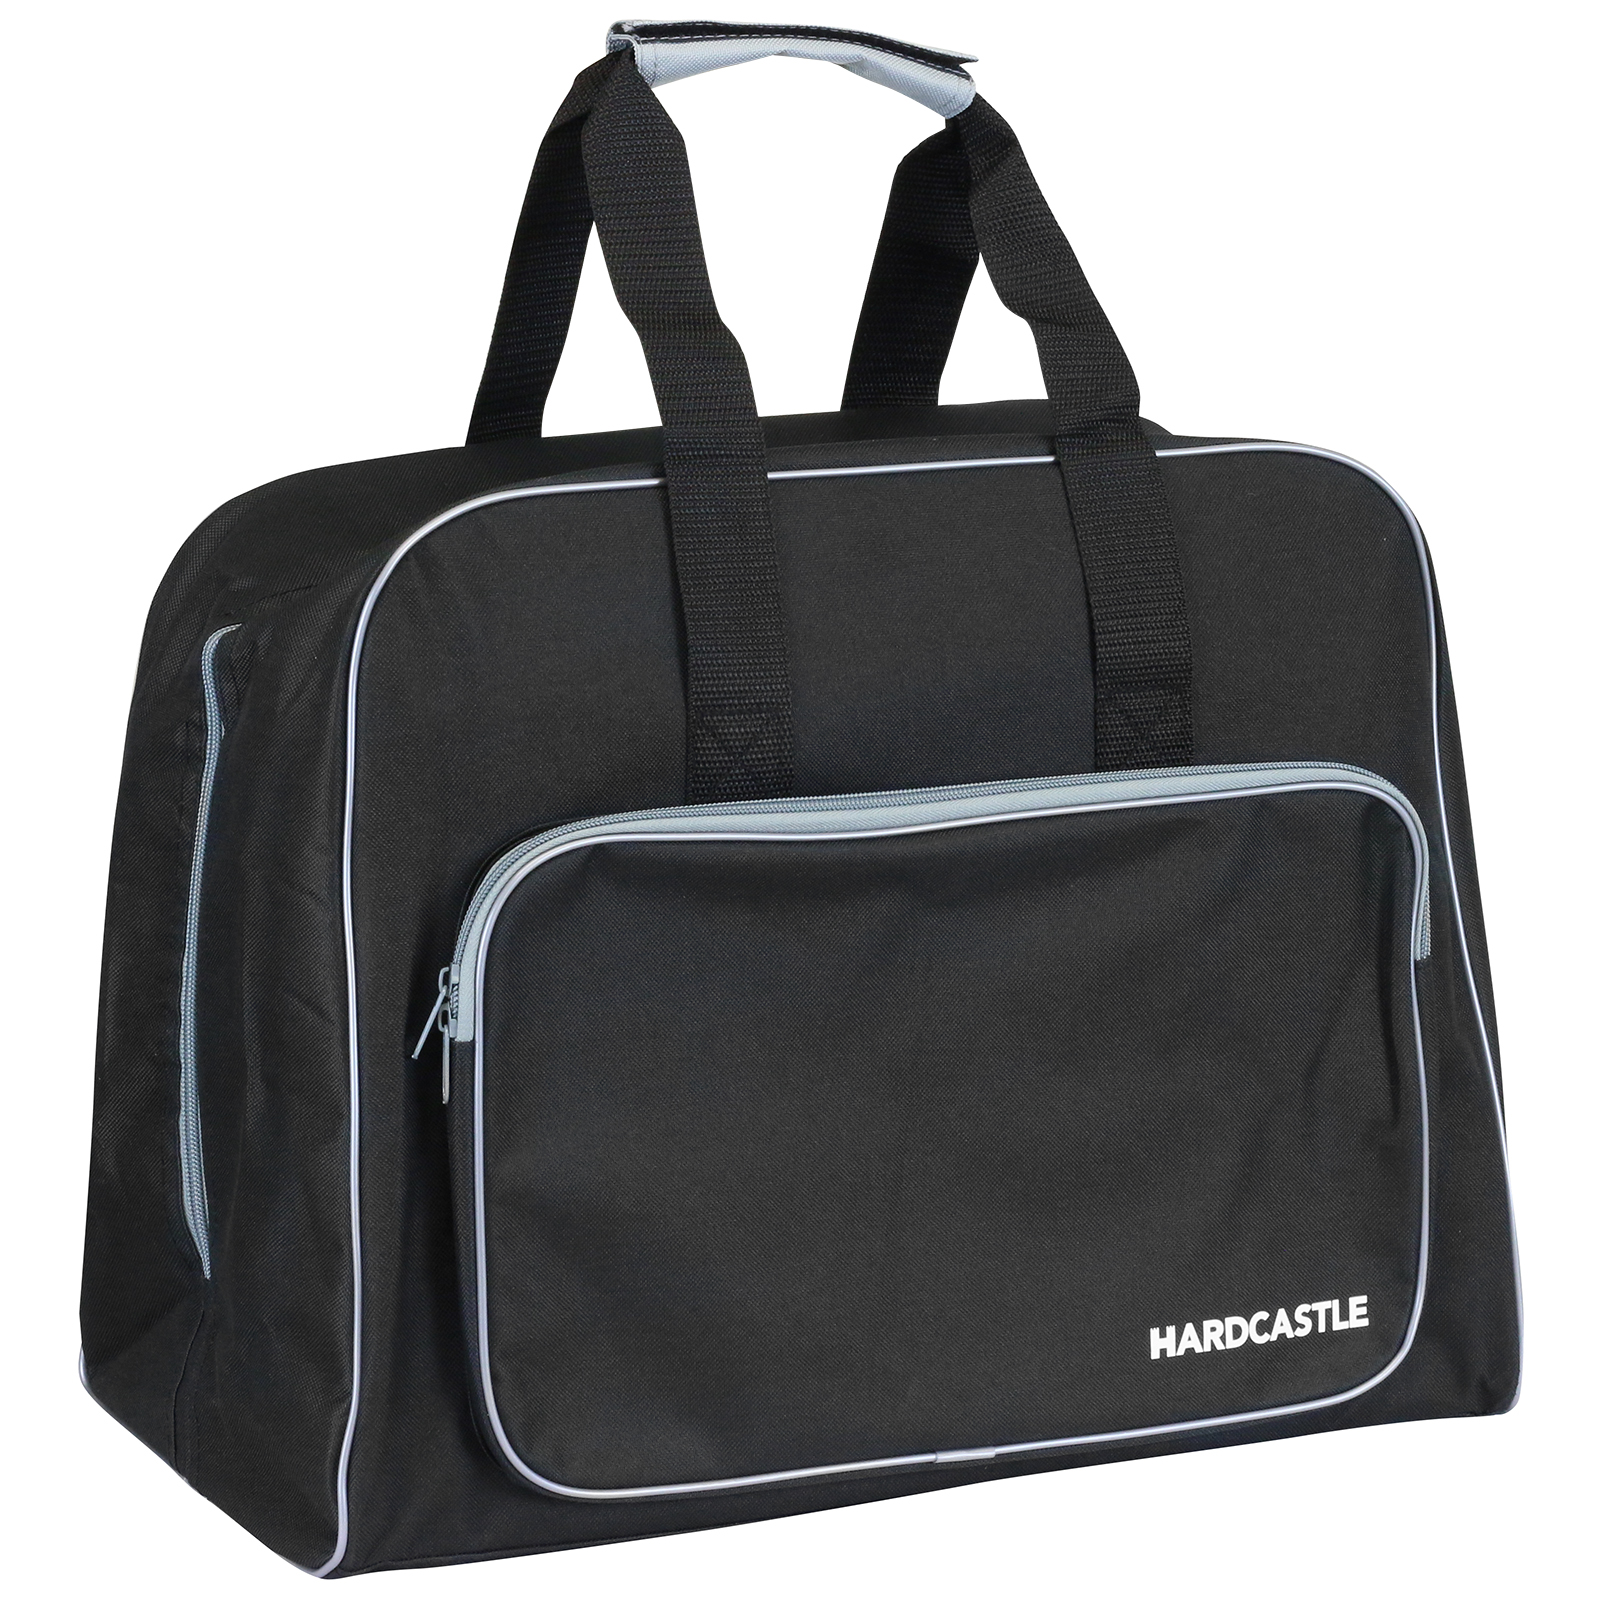 Hardcastle black padded sewing machine bag carry case with